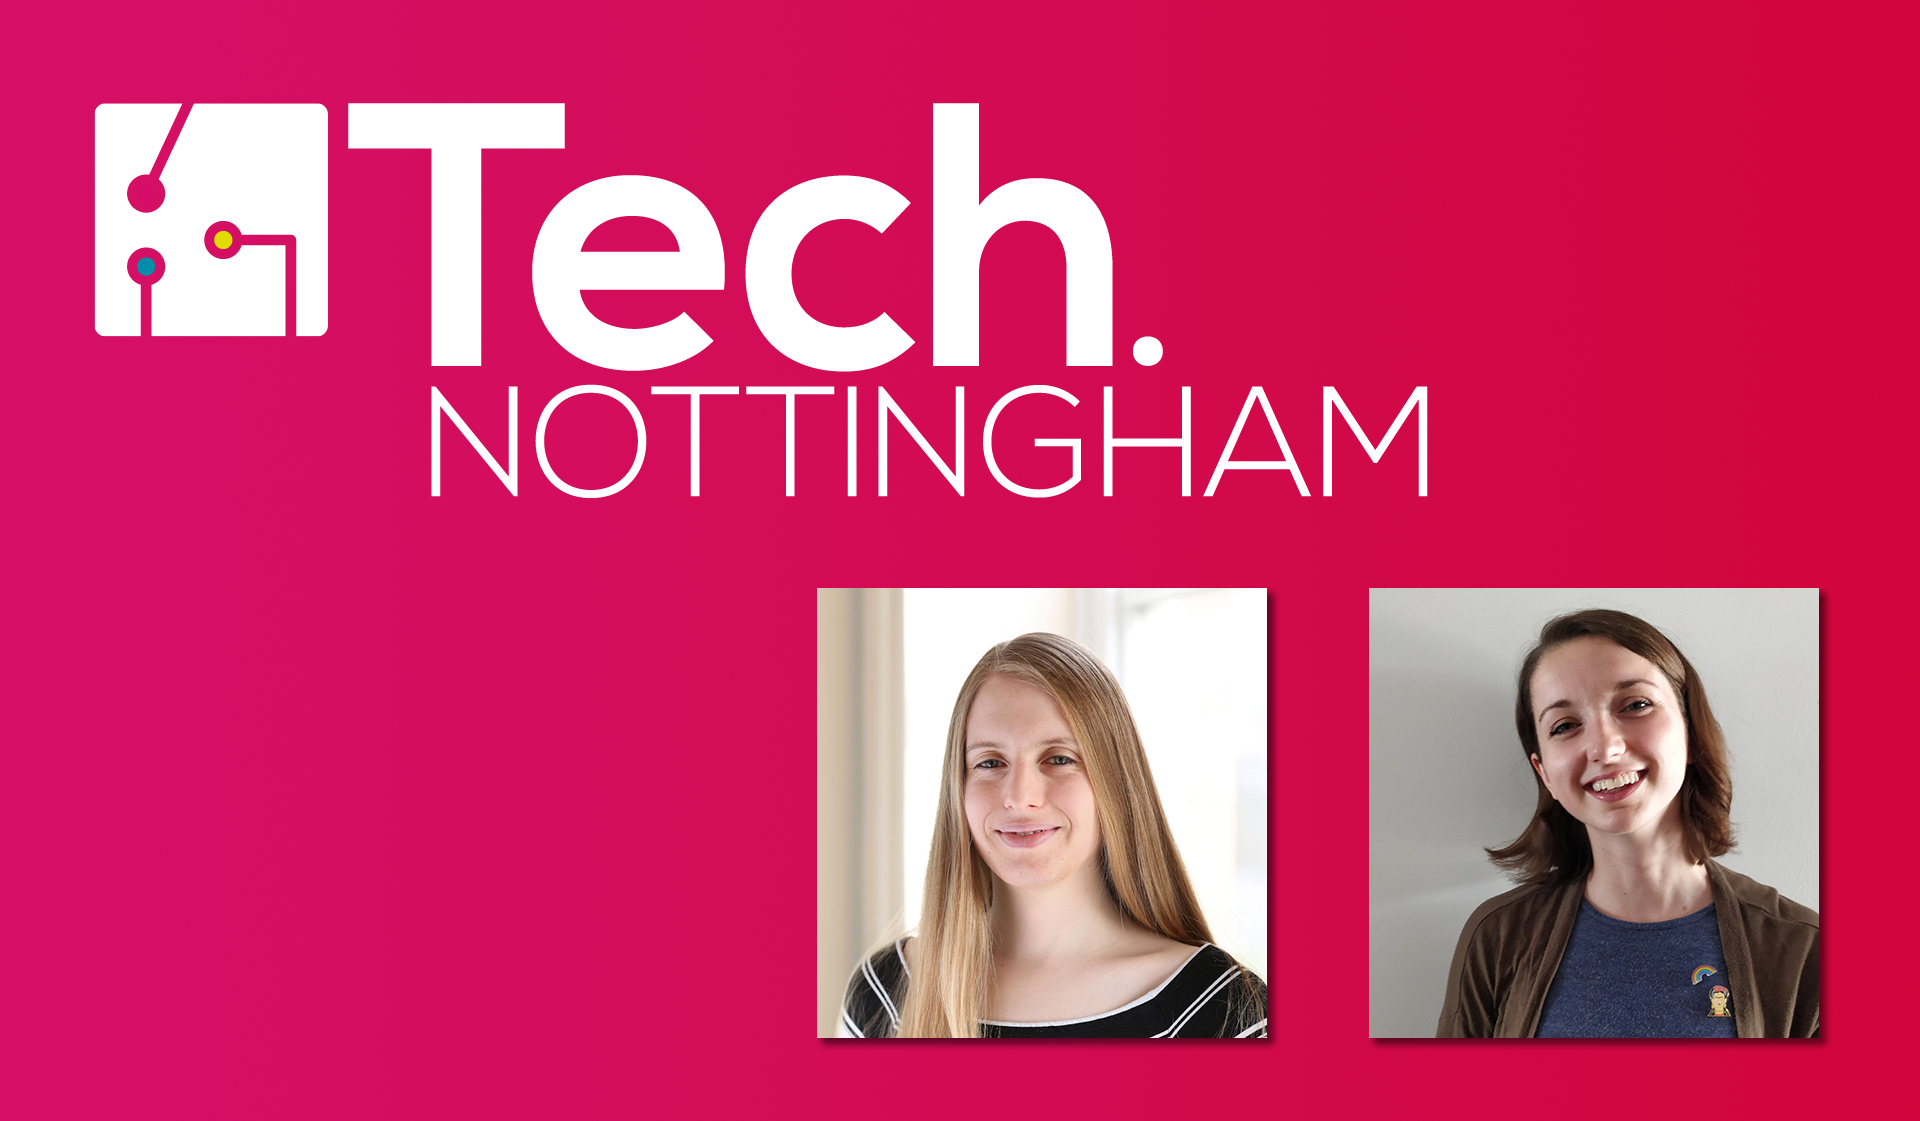 Tech Nottingham logo (white) on pink gradient background, with headshots of speakers Tessa Cooper and Aimee Gamble-Milner